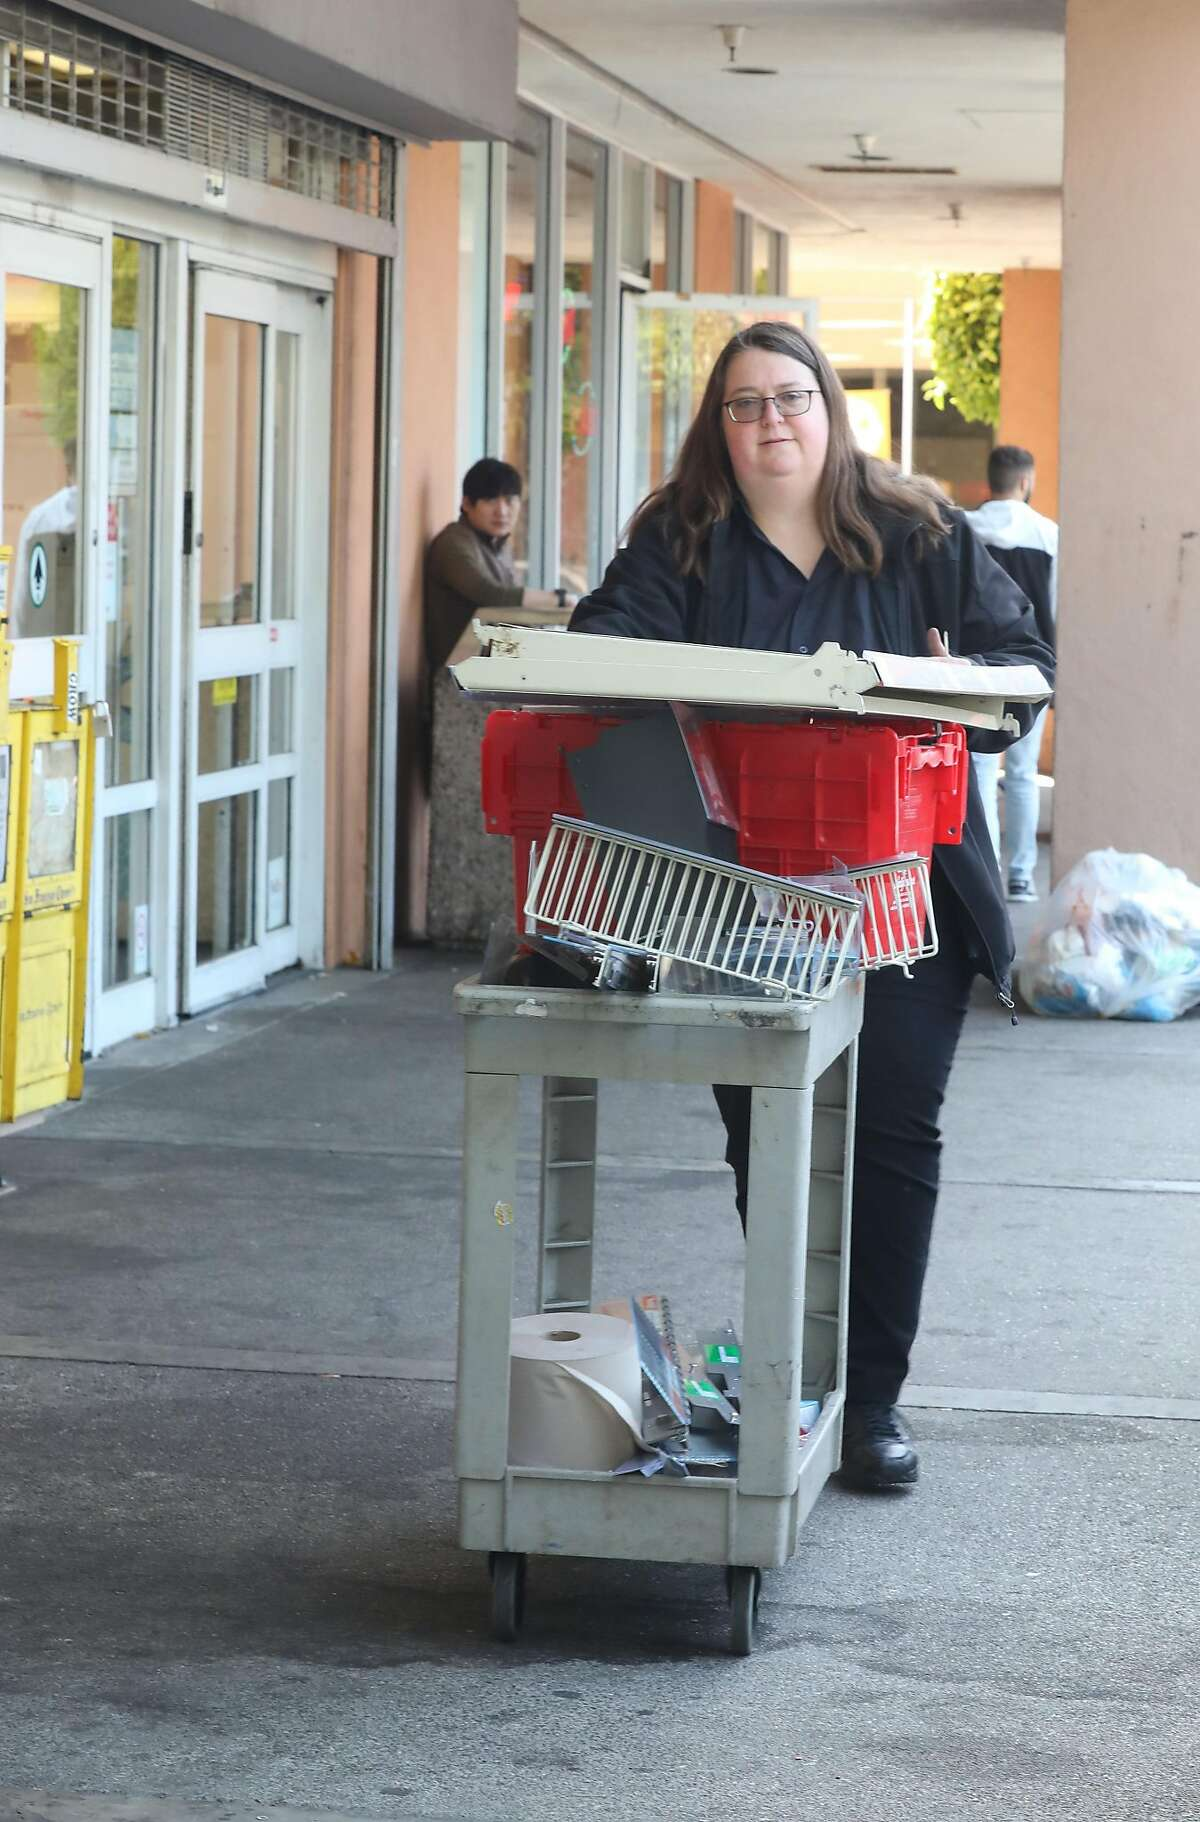 Walgreens display shelves seen being moved on Friday, July 19, 2019 in San Francisco, Calif. After 30 years in Bayview Plaza, Walgreens is closing shop and leaving just one other location, which will be the only drugstore in the Bayview Hunters Point neighborhood, much to the dismay of residents and nearby businesses.